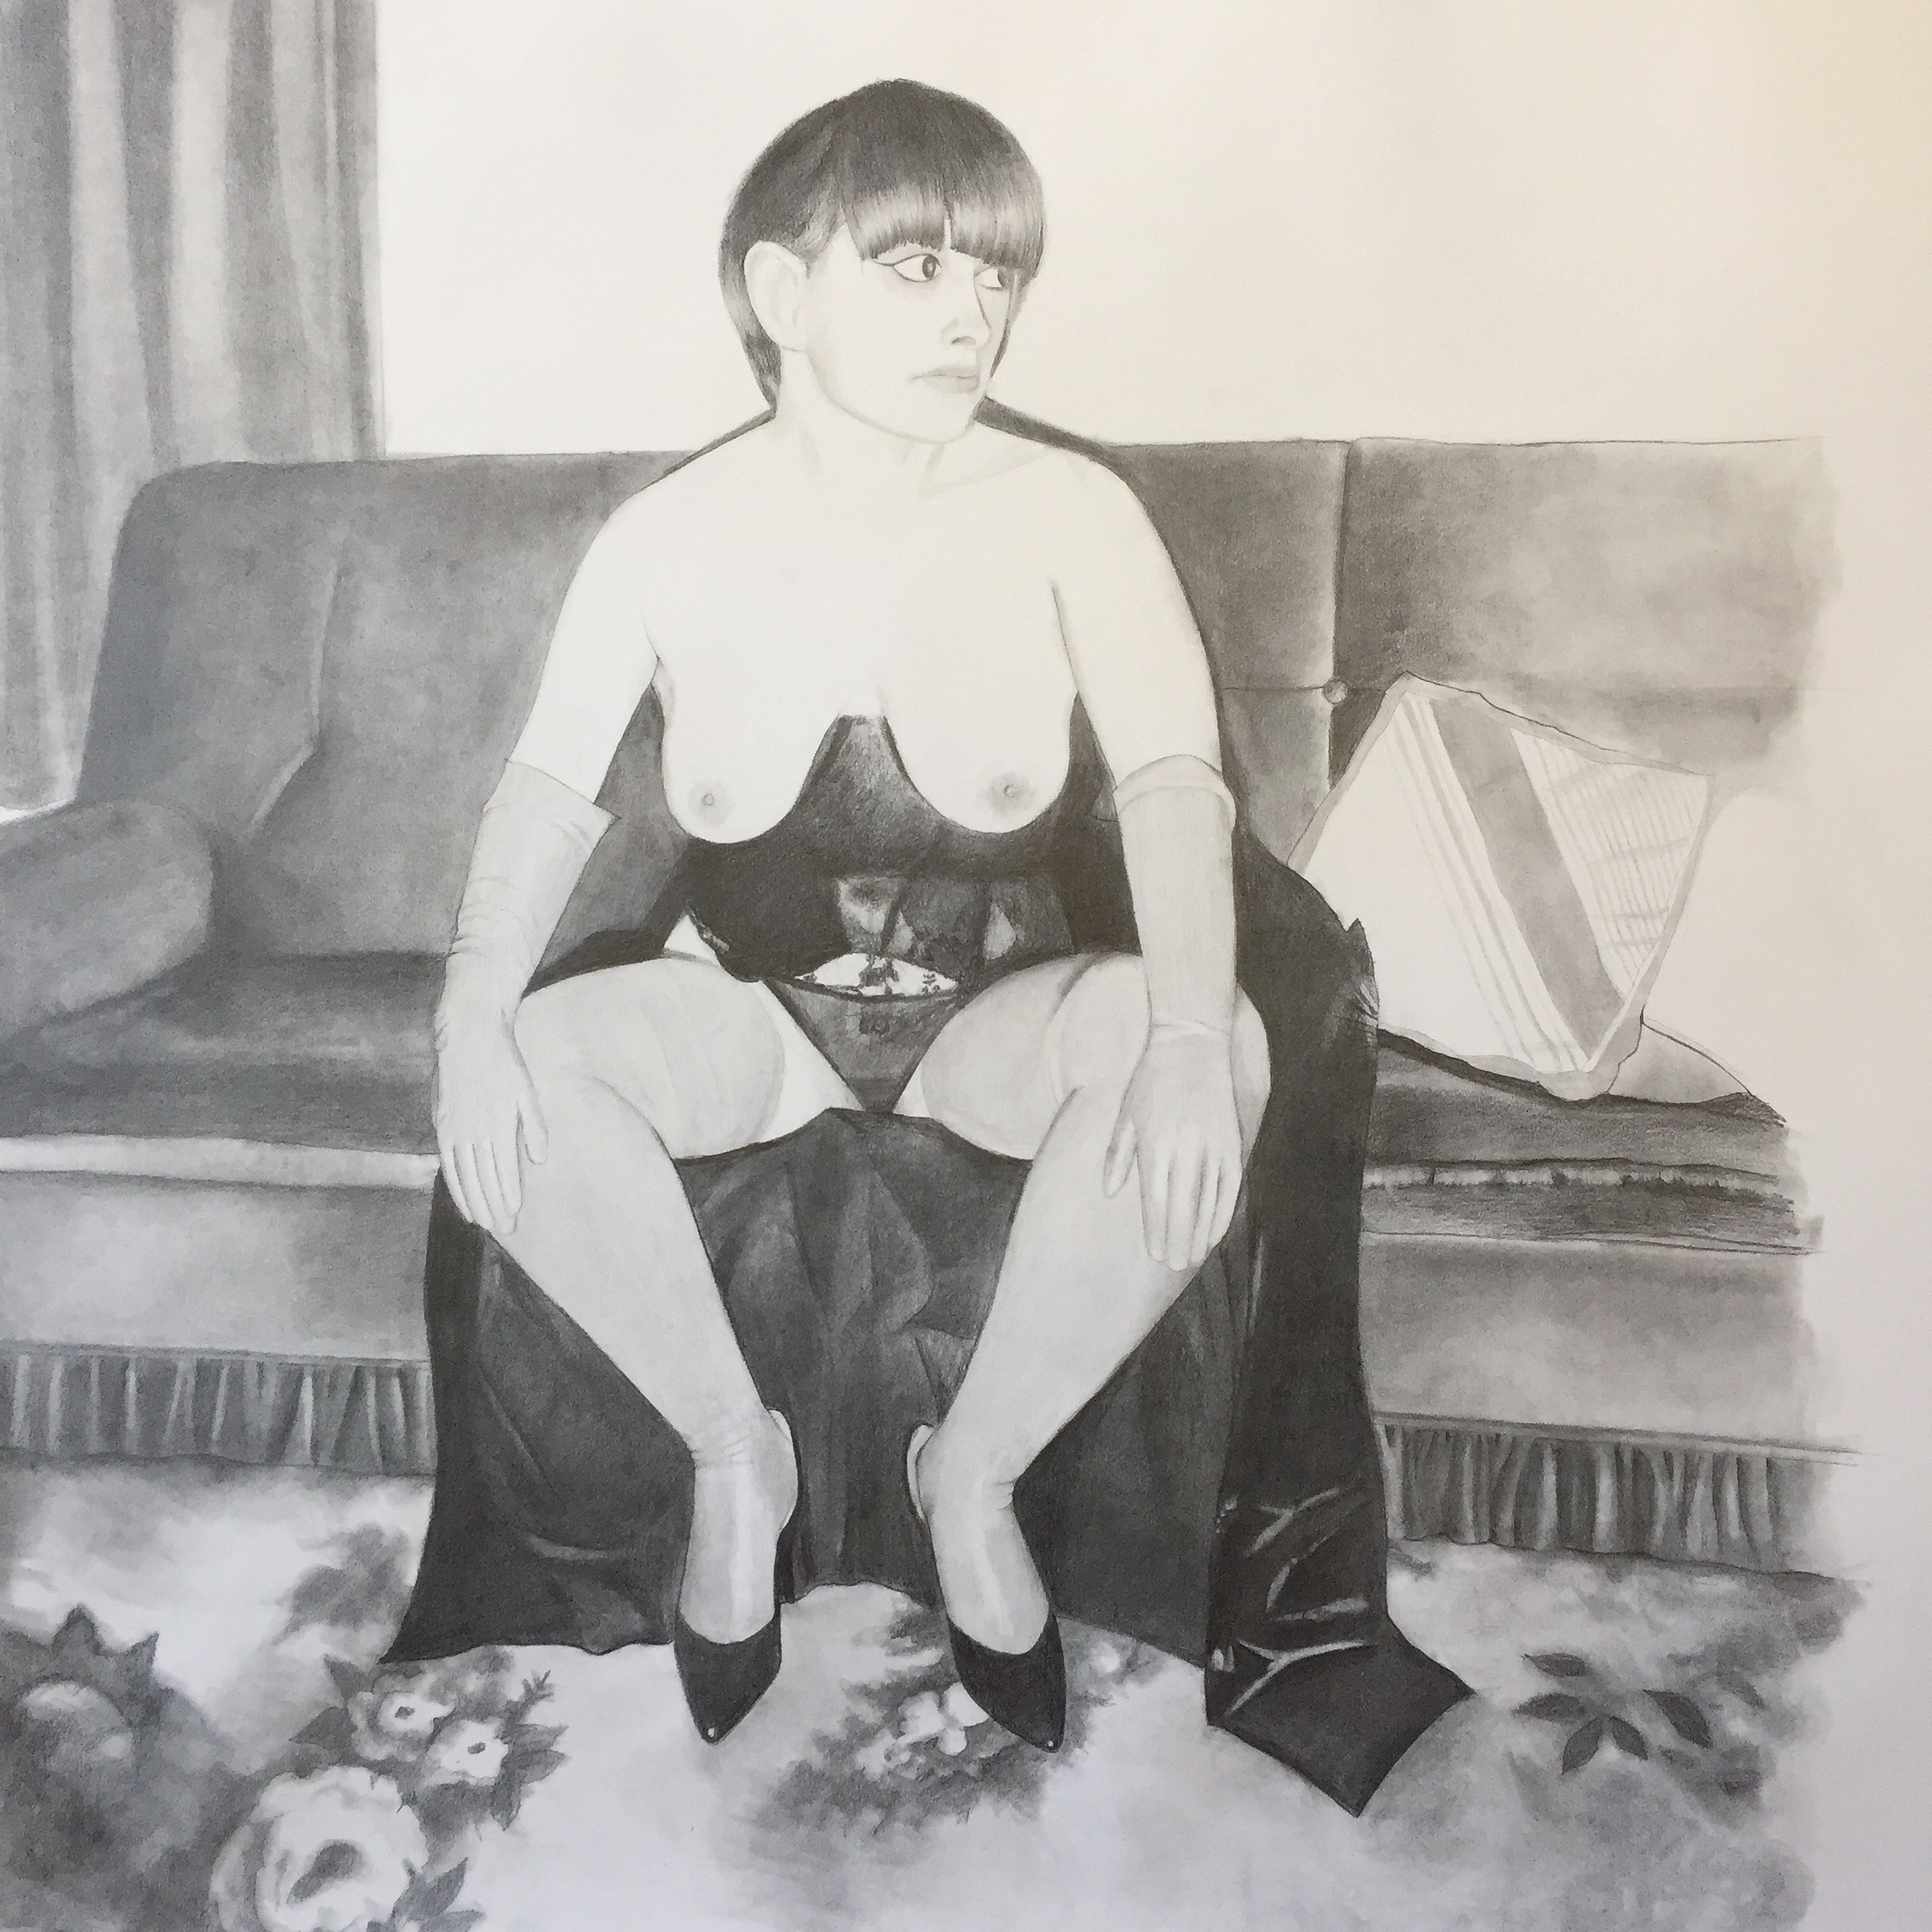 ERICA EYRES, Ursula, 2018, pencil on paper, 32 x 28 inches SOLD